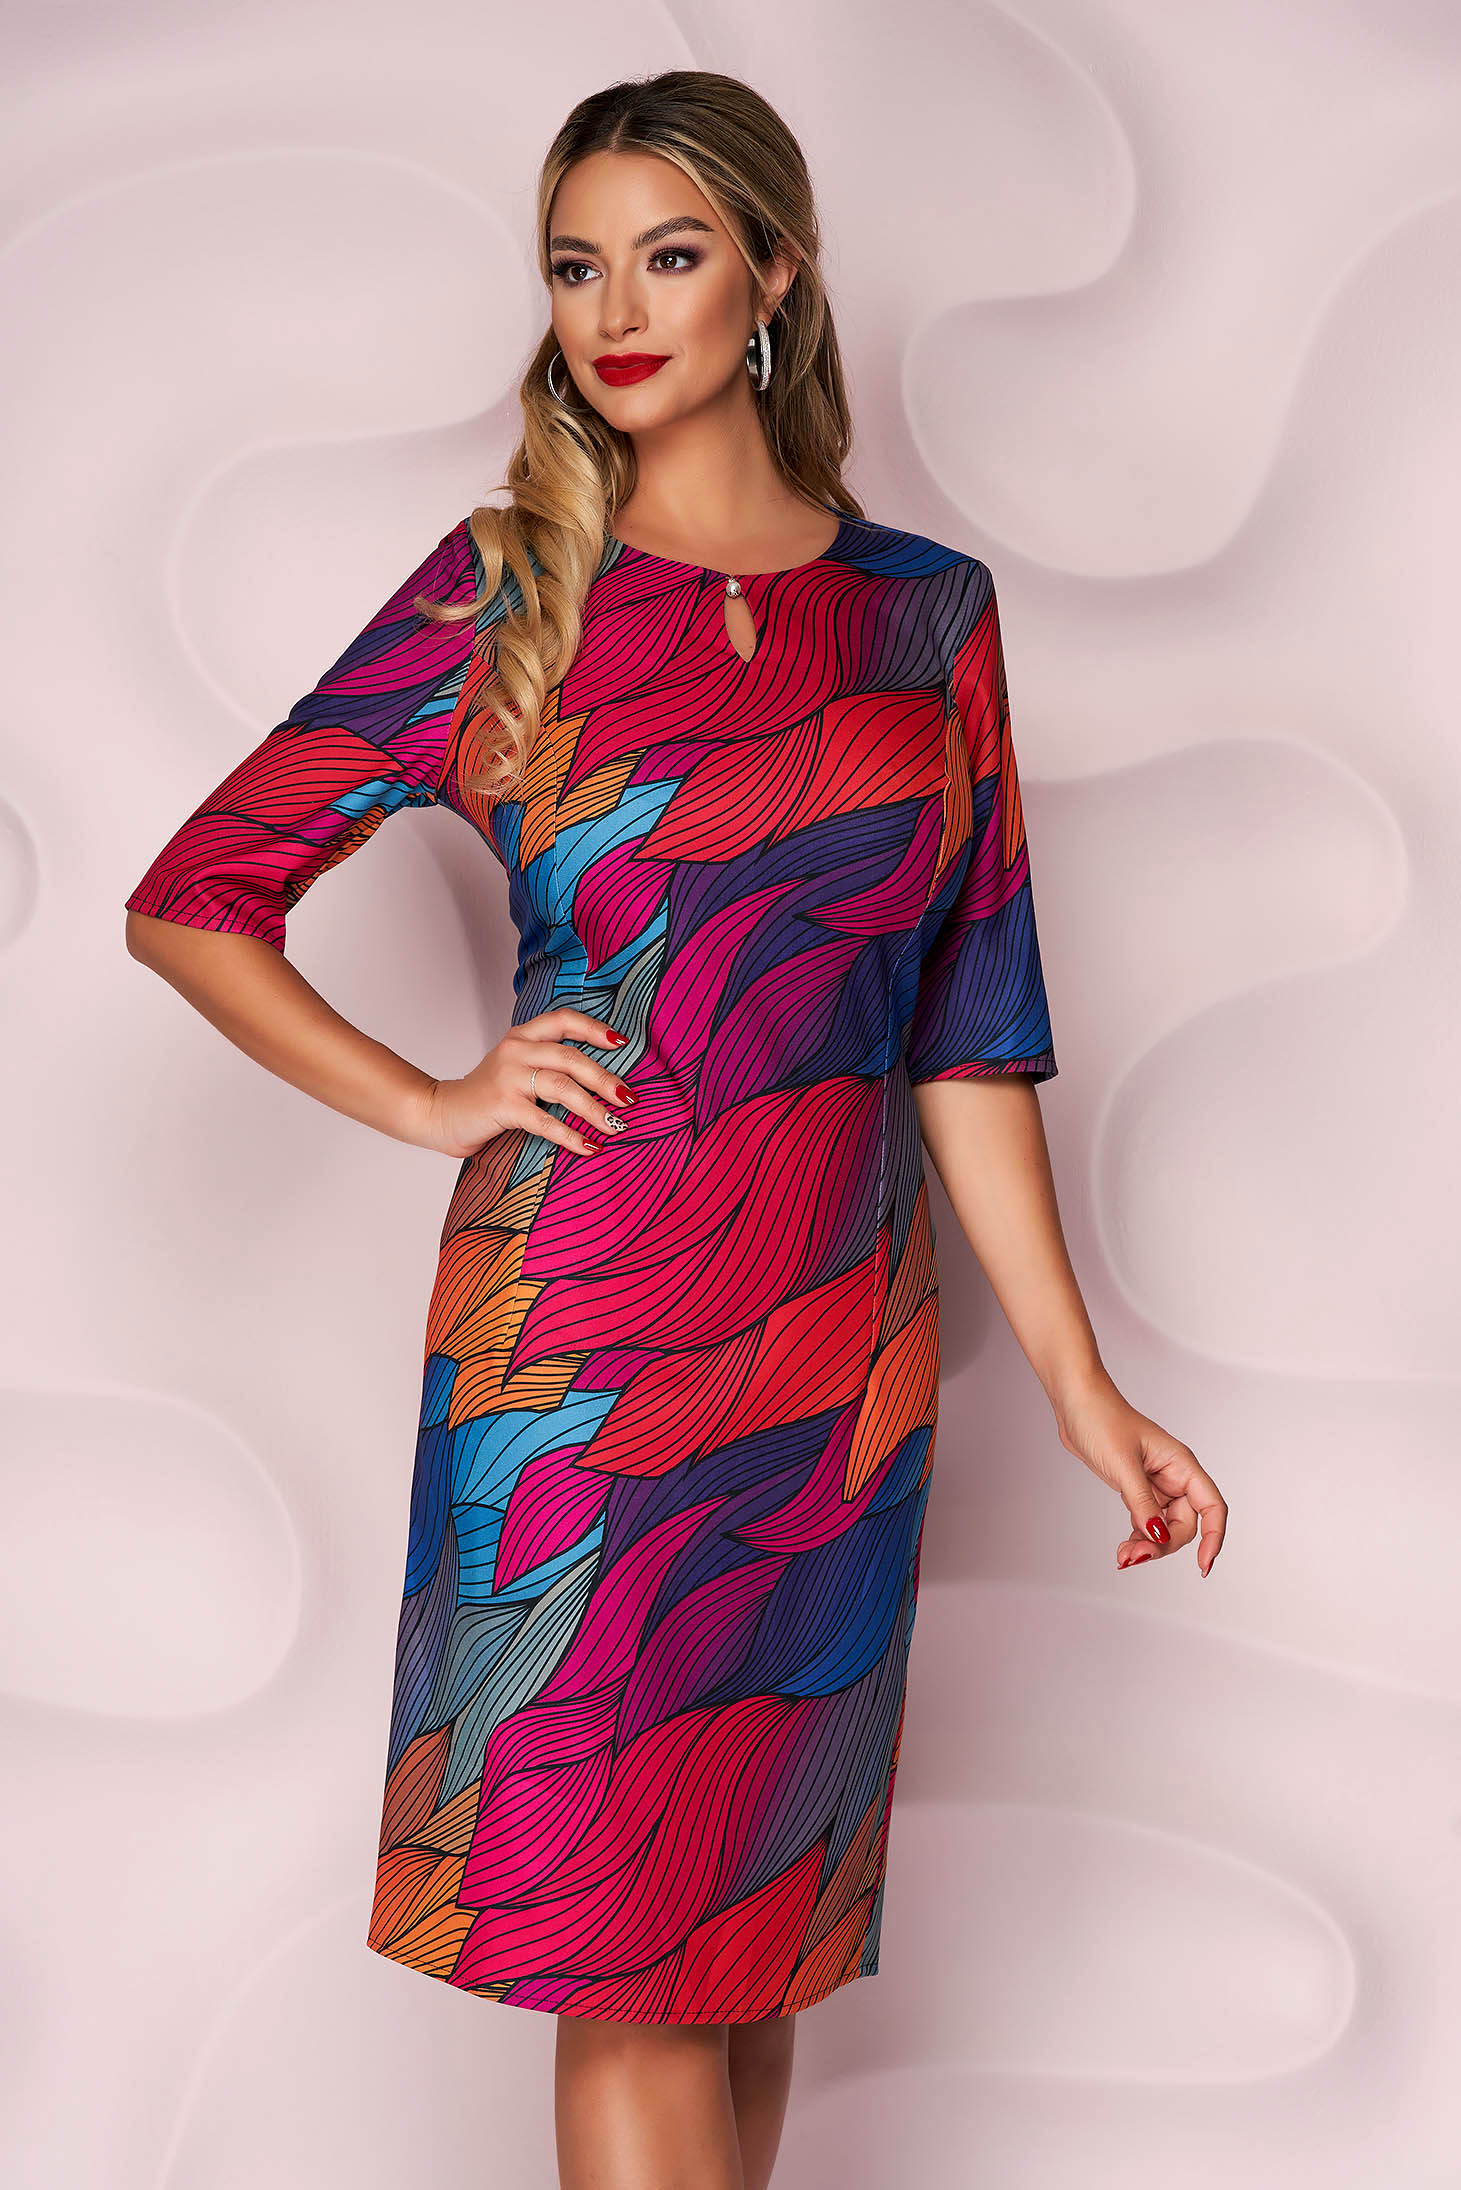 Dress office straight midi thin fabric slightly elastic fabric with graphic details